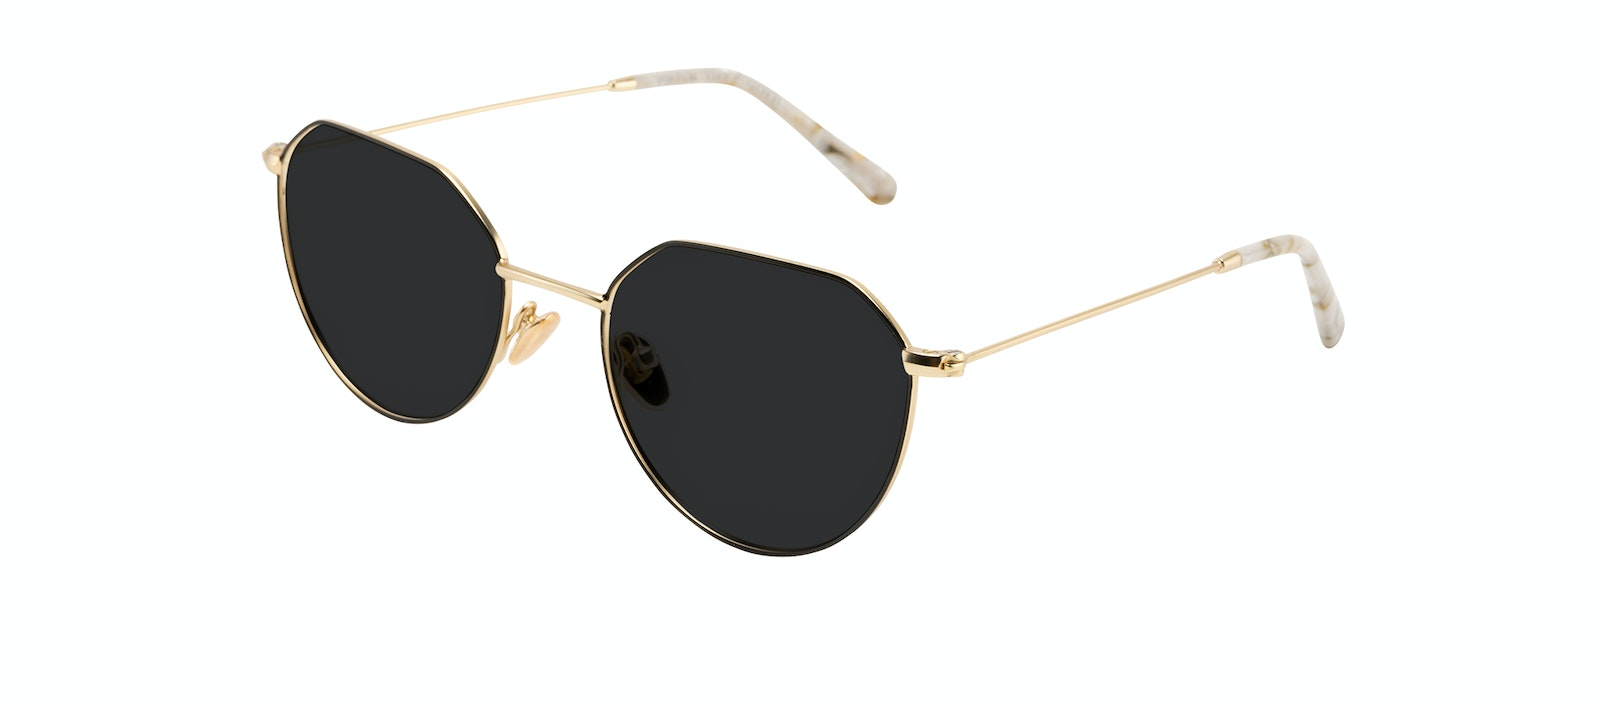 Affordable Fashion Glasses Round Sunglasses Women Prism Deep Gold Tilt